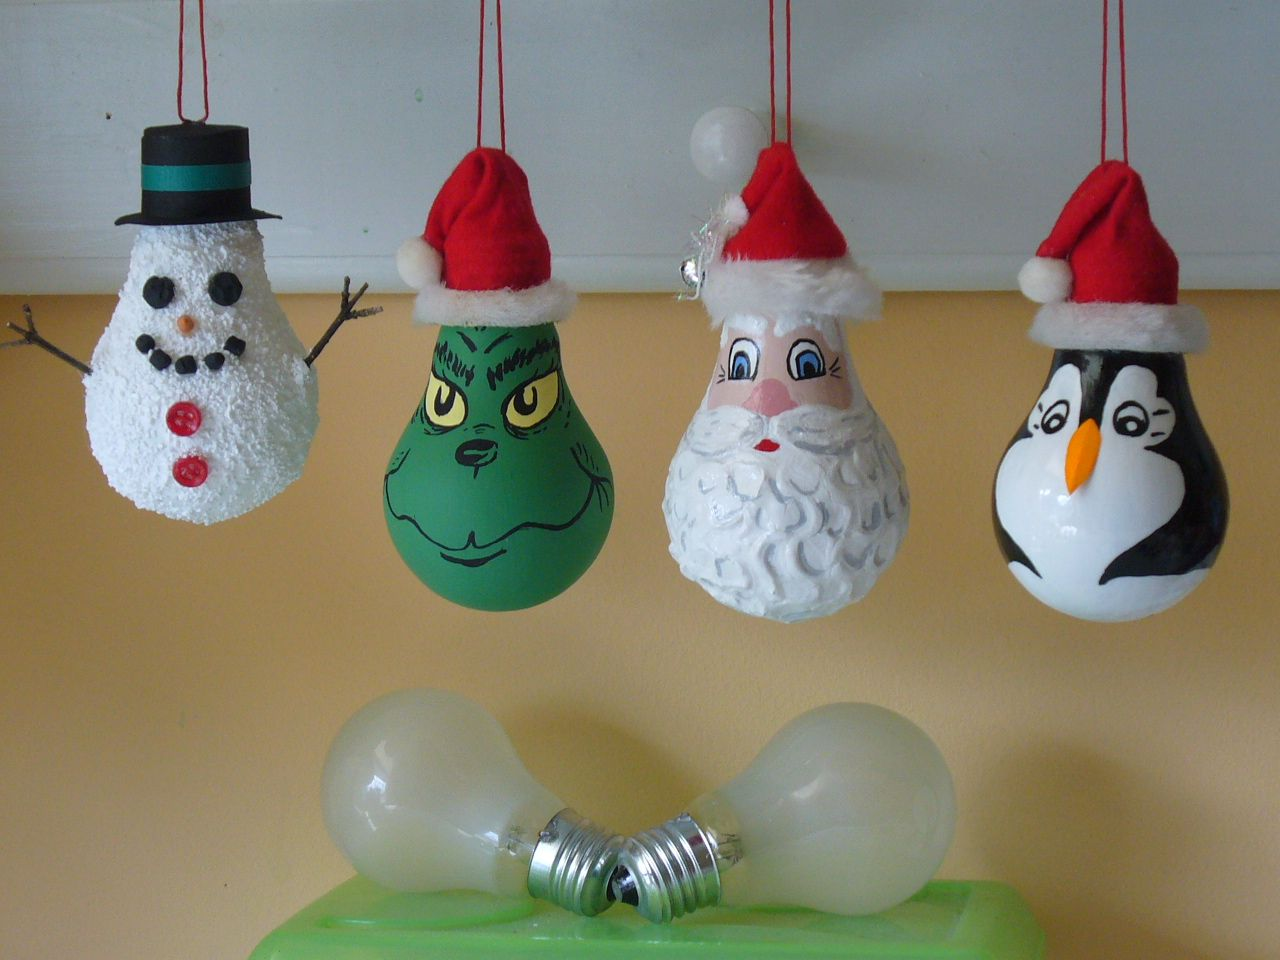 Ideas Light Bulb Christmas Ornaments Don T Throw Those Old Bulbs Away Snowman Grinch Christmas Ornament Crafts Christmas Ornaments Diy Christmas Ornaments